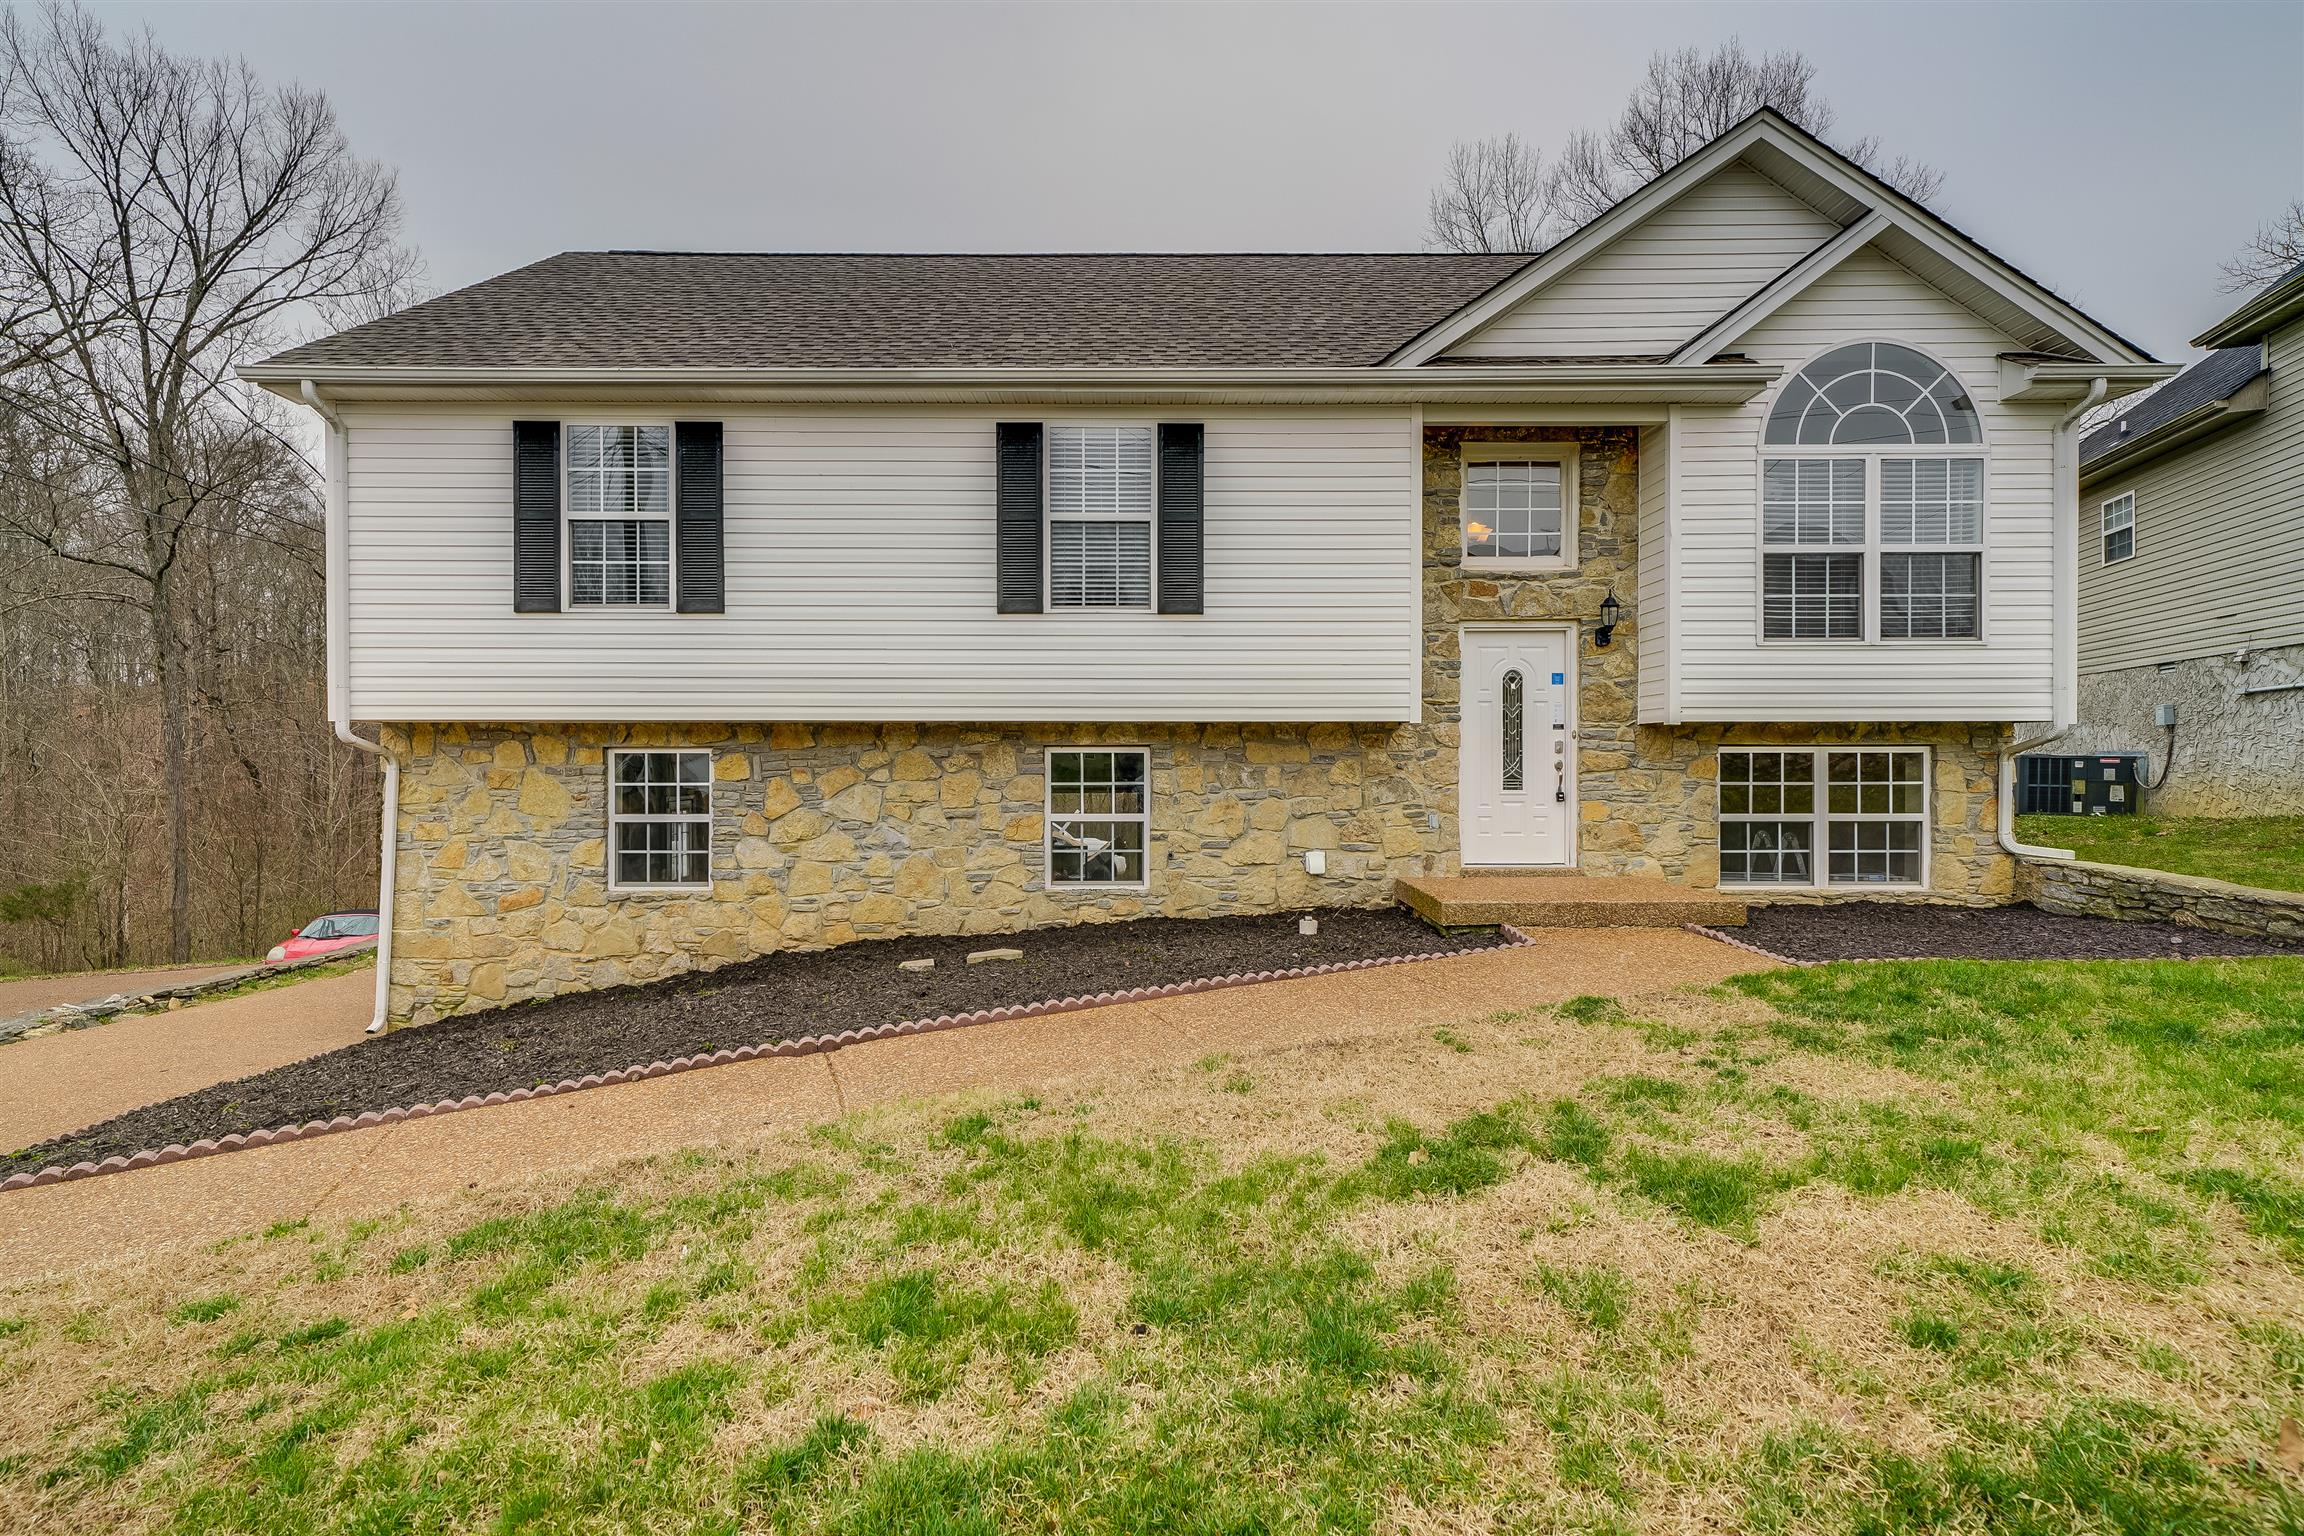 1912 Streamfield Ct, Nashville-Antioch in Davidson County County, TN 37013 Home for Sale